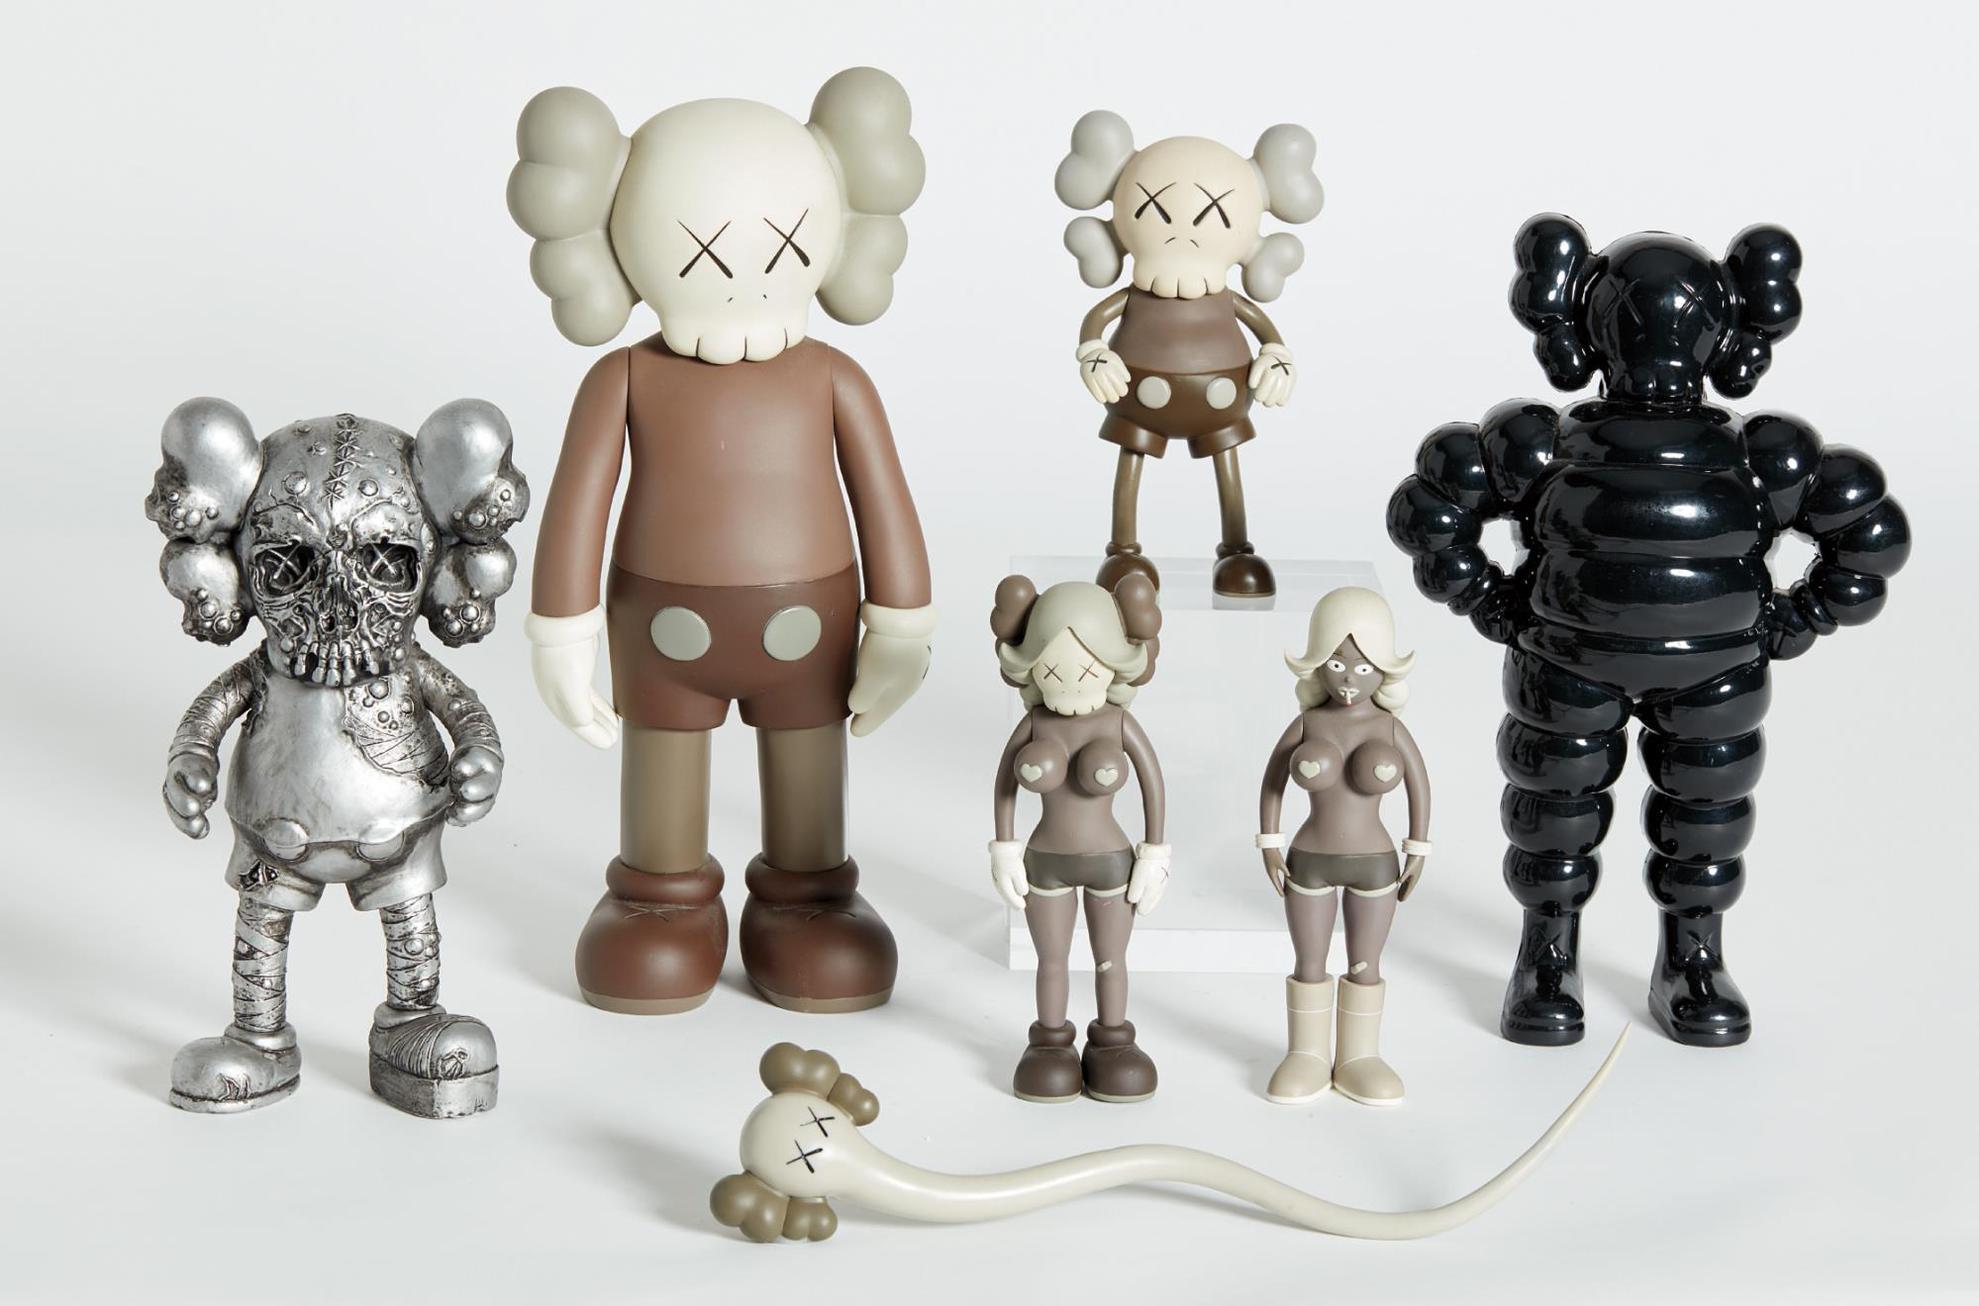 KAWS-Six Works: (Real) Companion; Chum; Bendy; Companion (Five Years Later); Pushead; And The Twins-2006